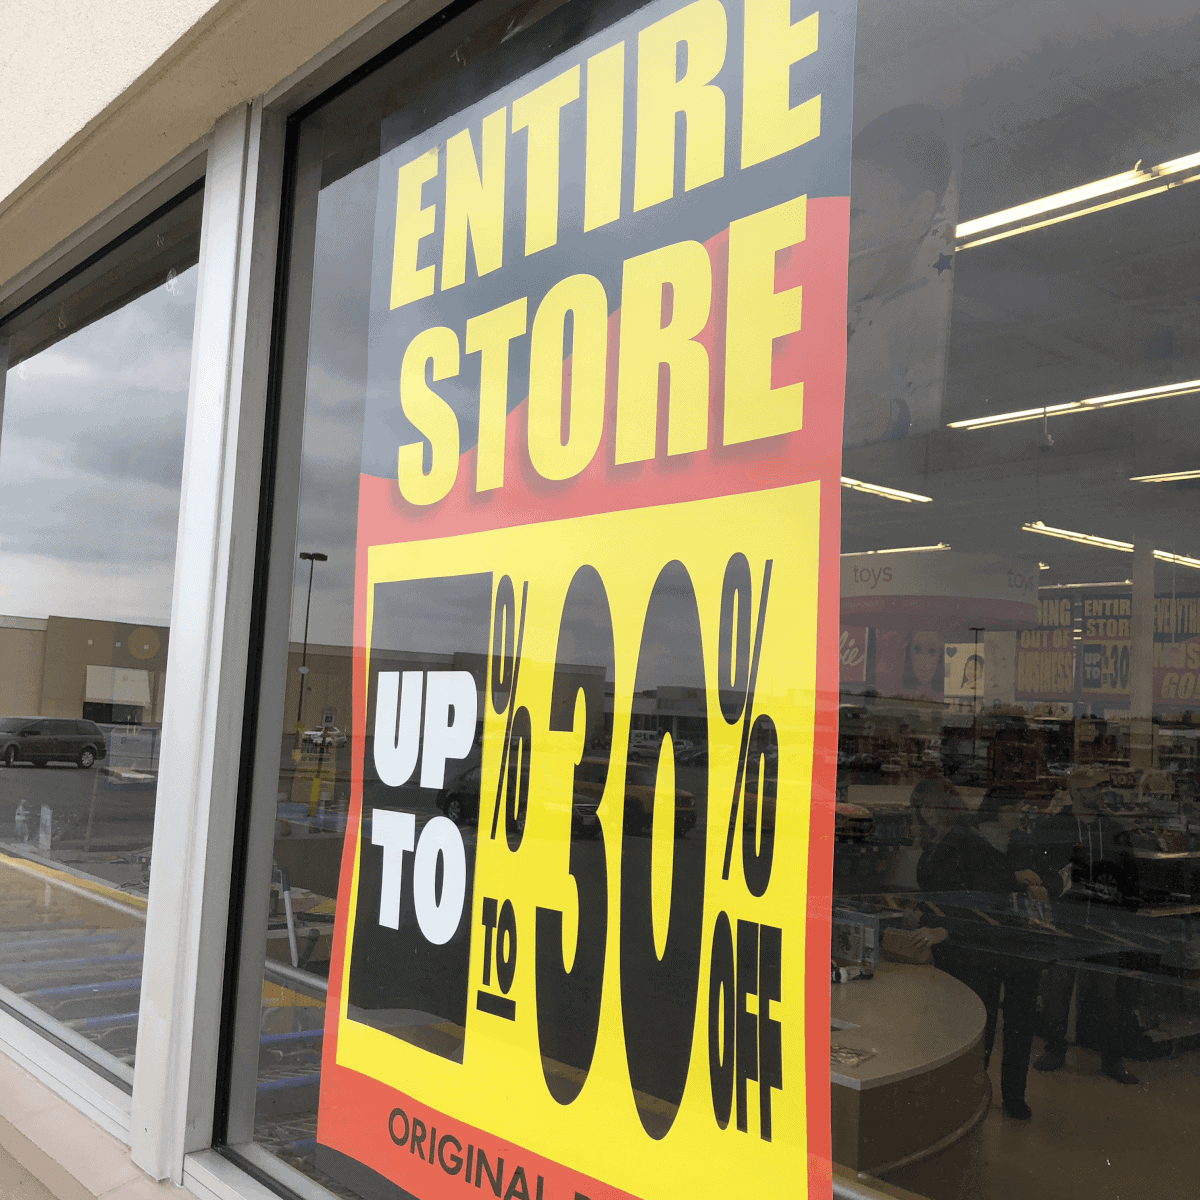 Toys R Us has not fully committed to going out of business - Bent Corner